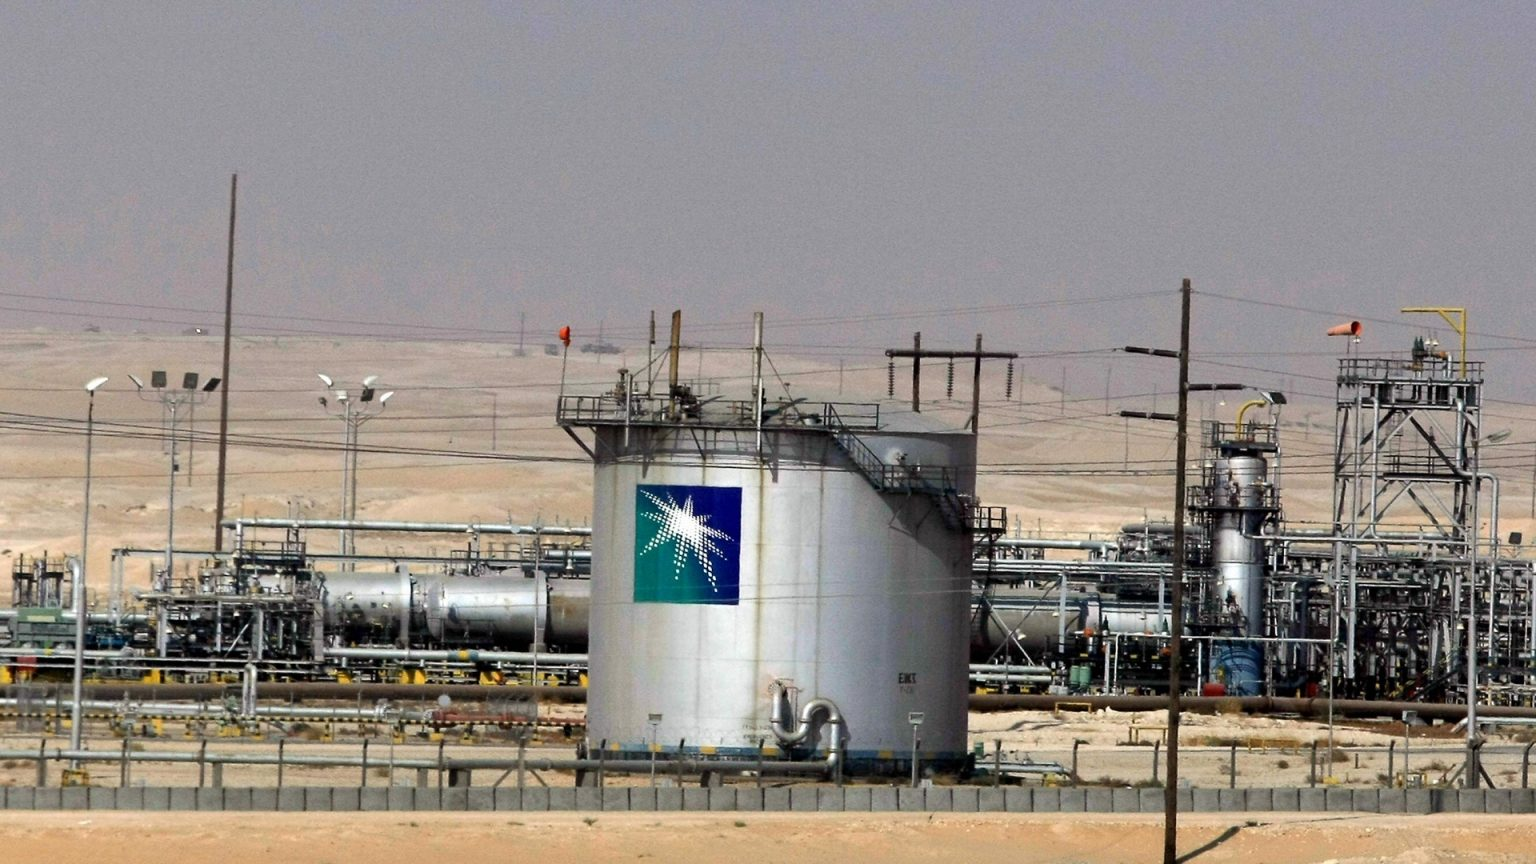 Attack on a Saudi oil terminal